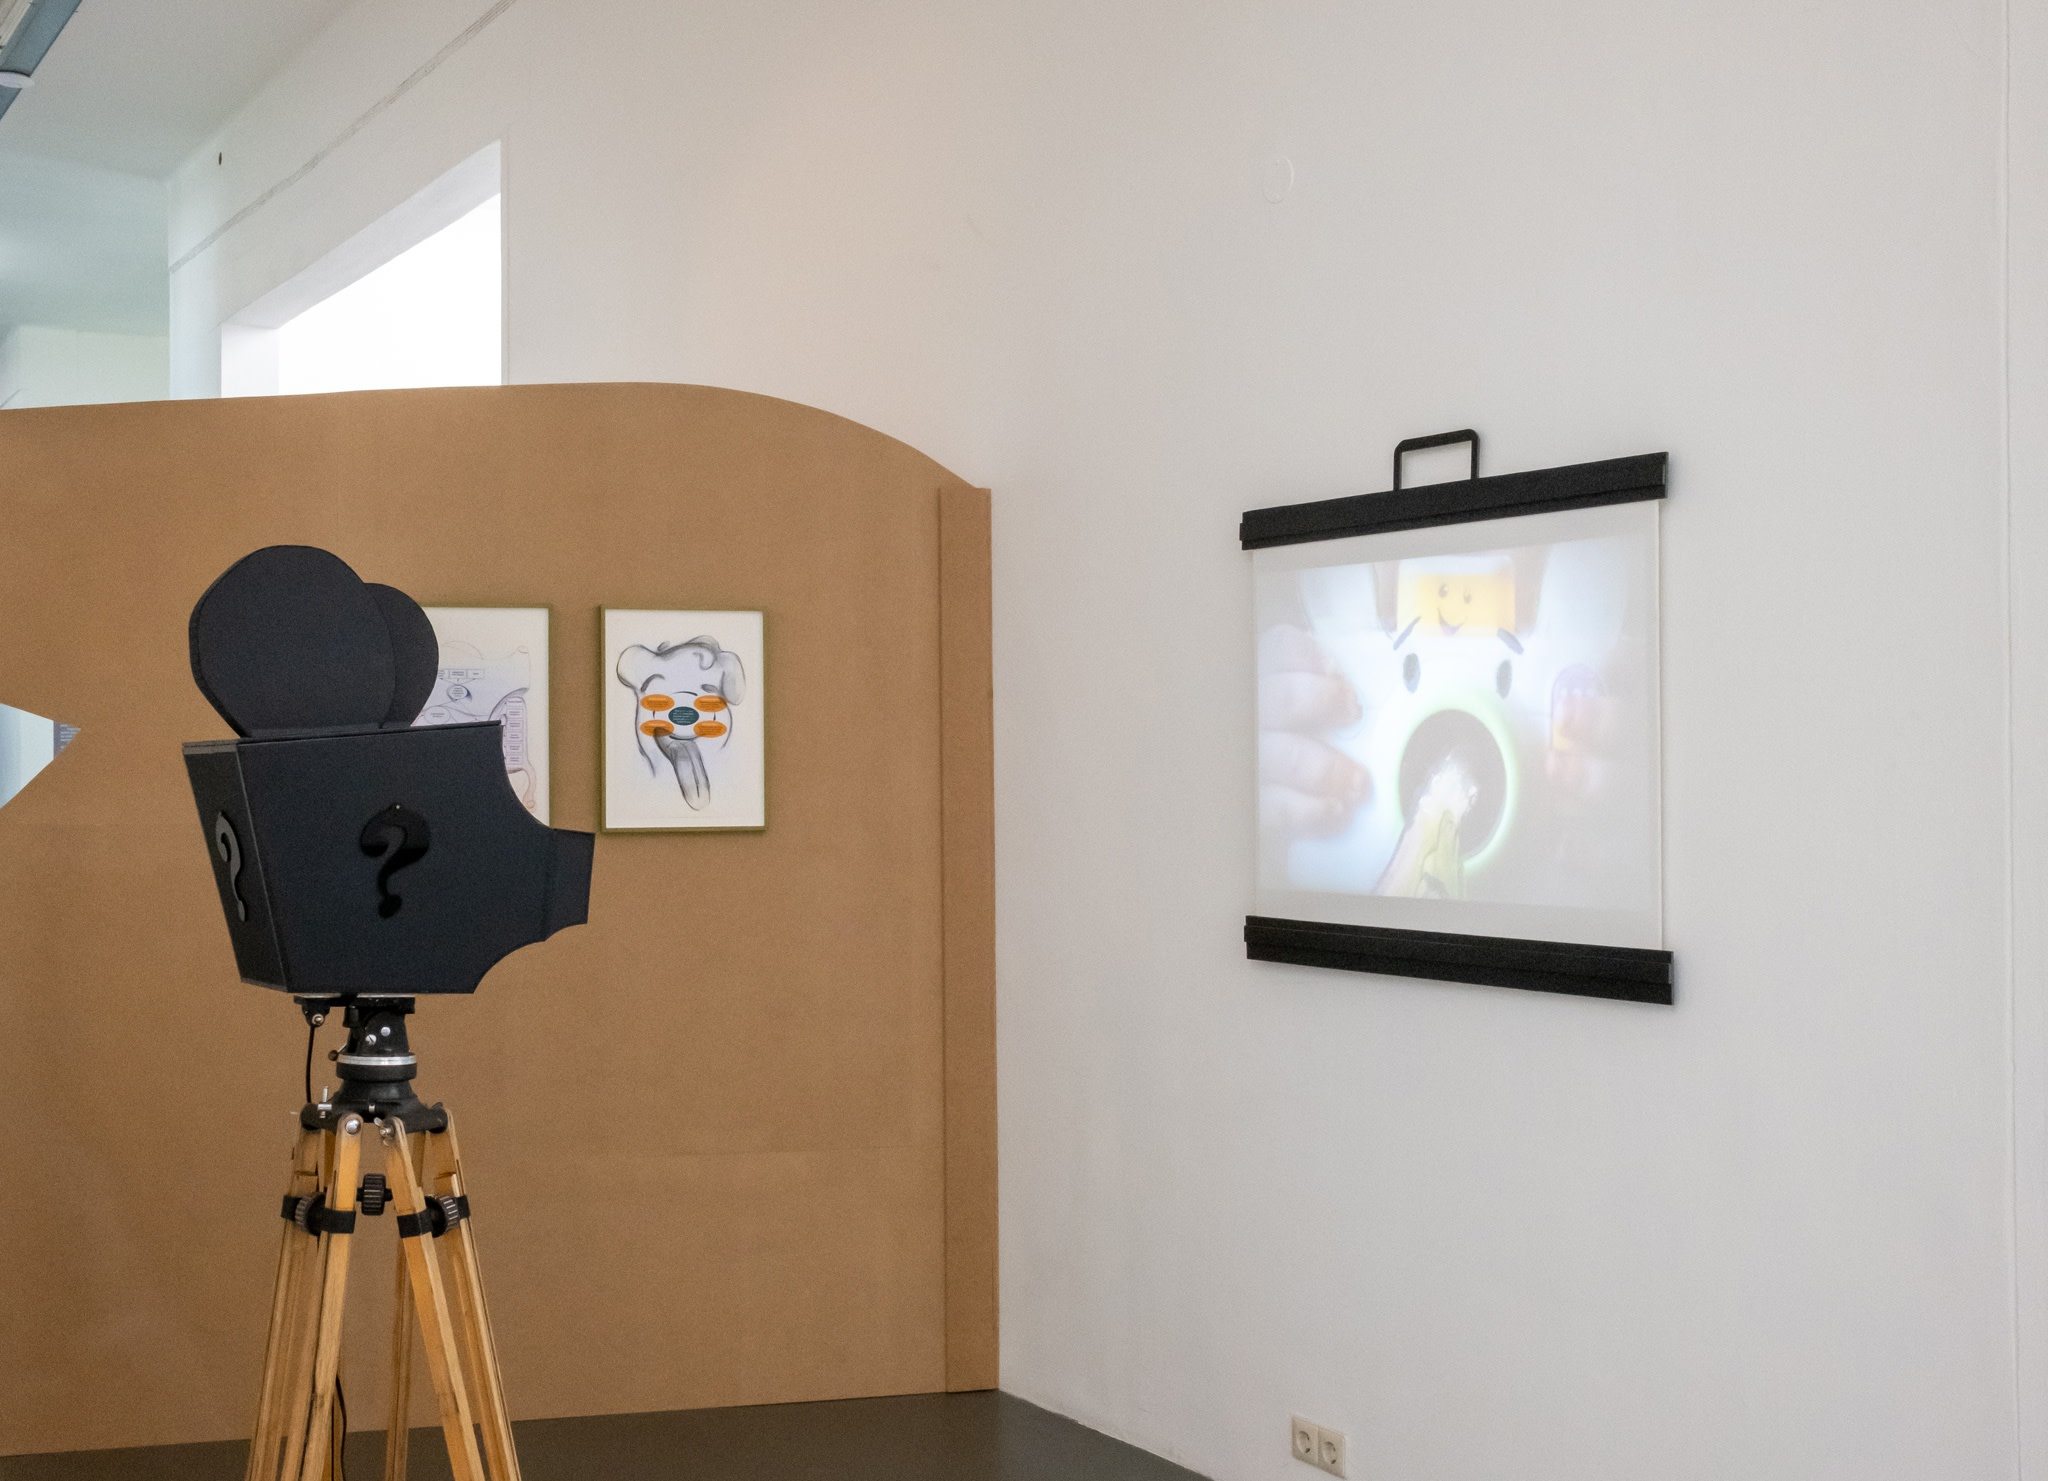 Who's Childhood?, 2021. sculptural installation, cardboard, electrical tape, Plexiglas, antique tripod, projector, projection screen, 164 x 73 x 73 cm (64 5/8 x 28 3/4 x 28 3/4 in) (projector on tripod), variable edition of 3. Photo © Jeroen Lavèn